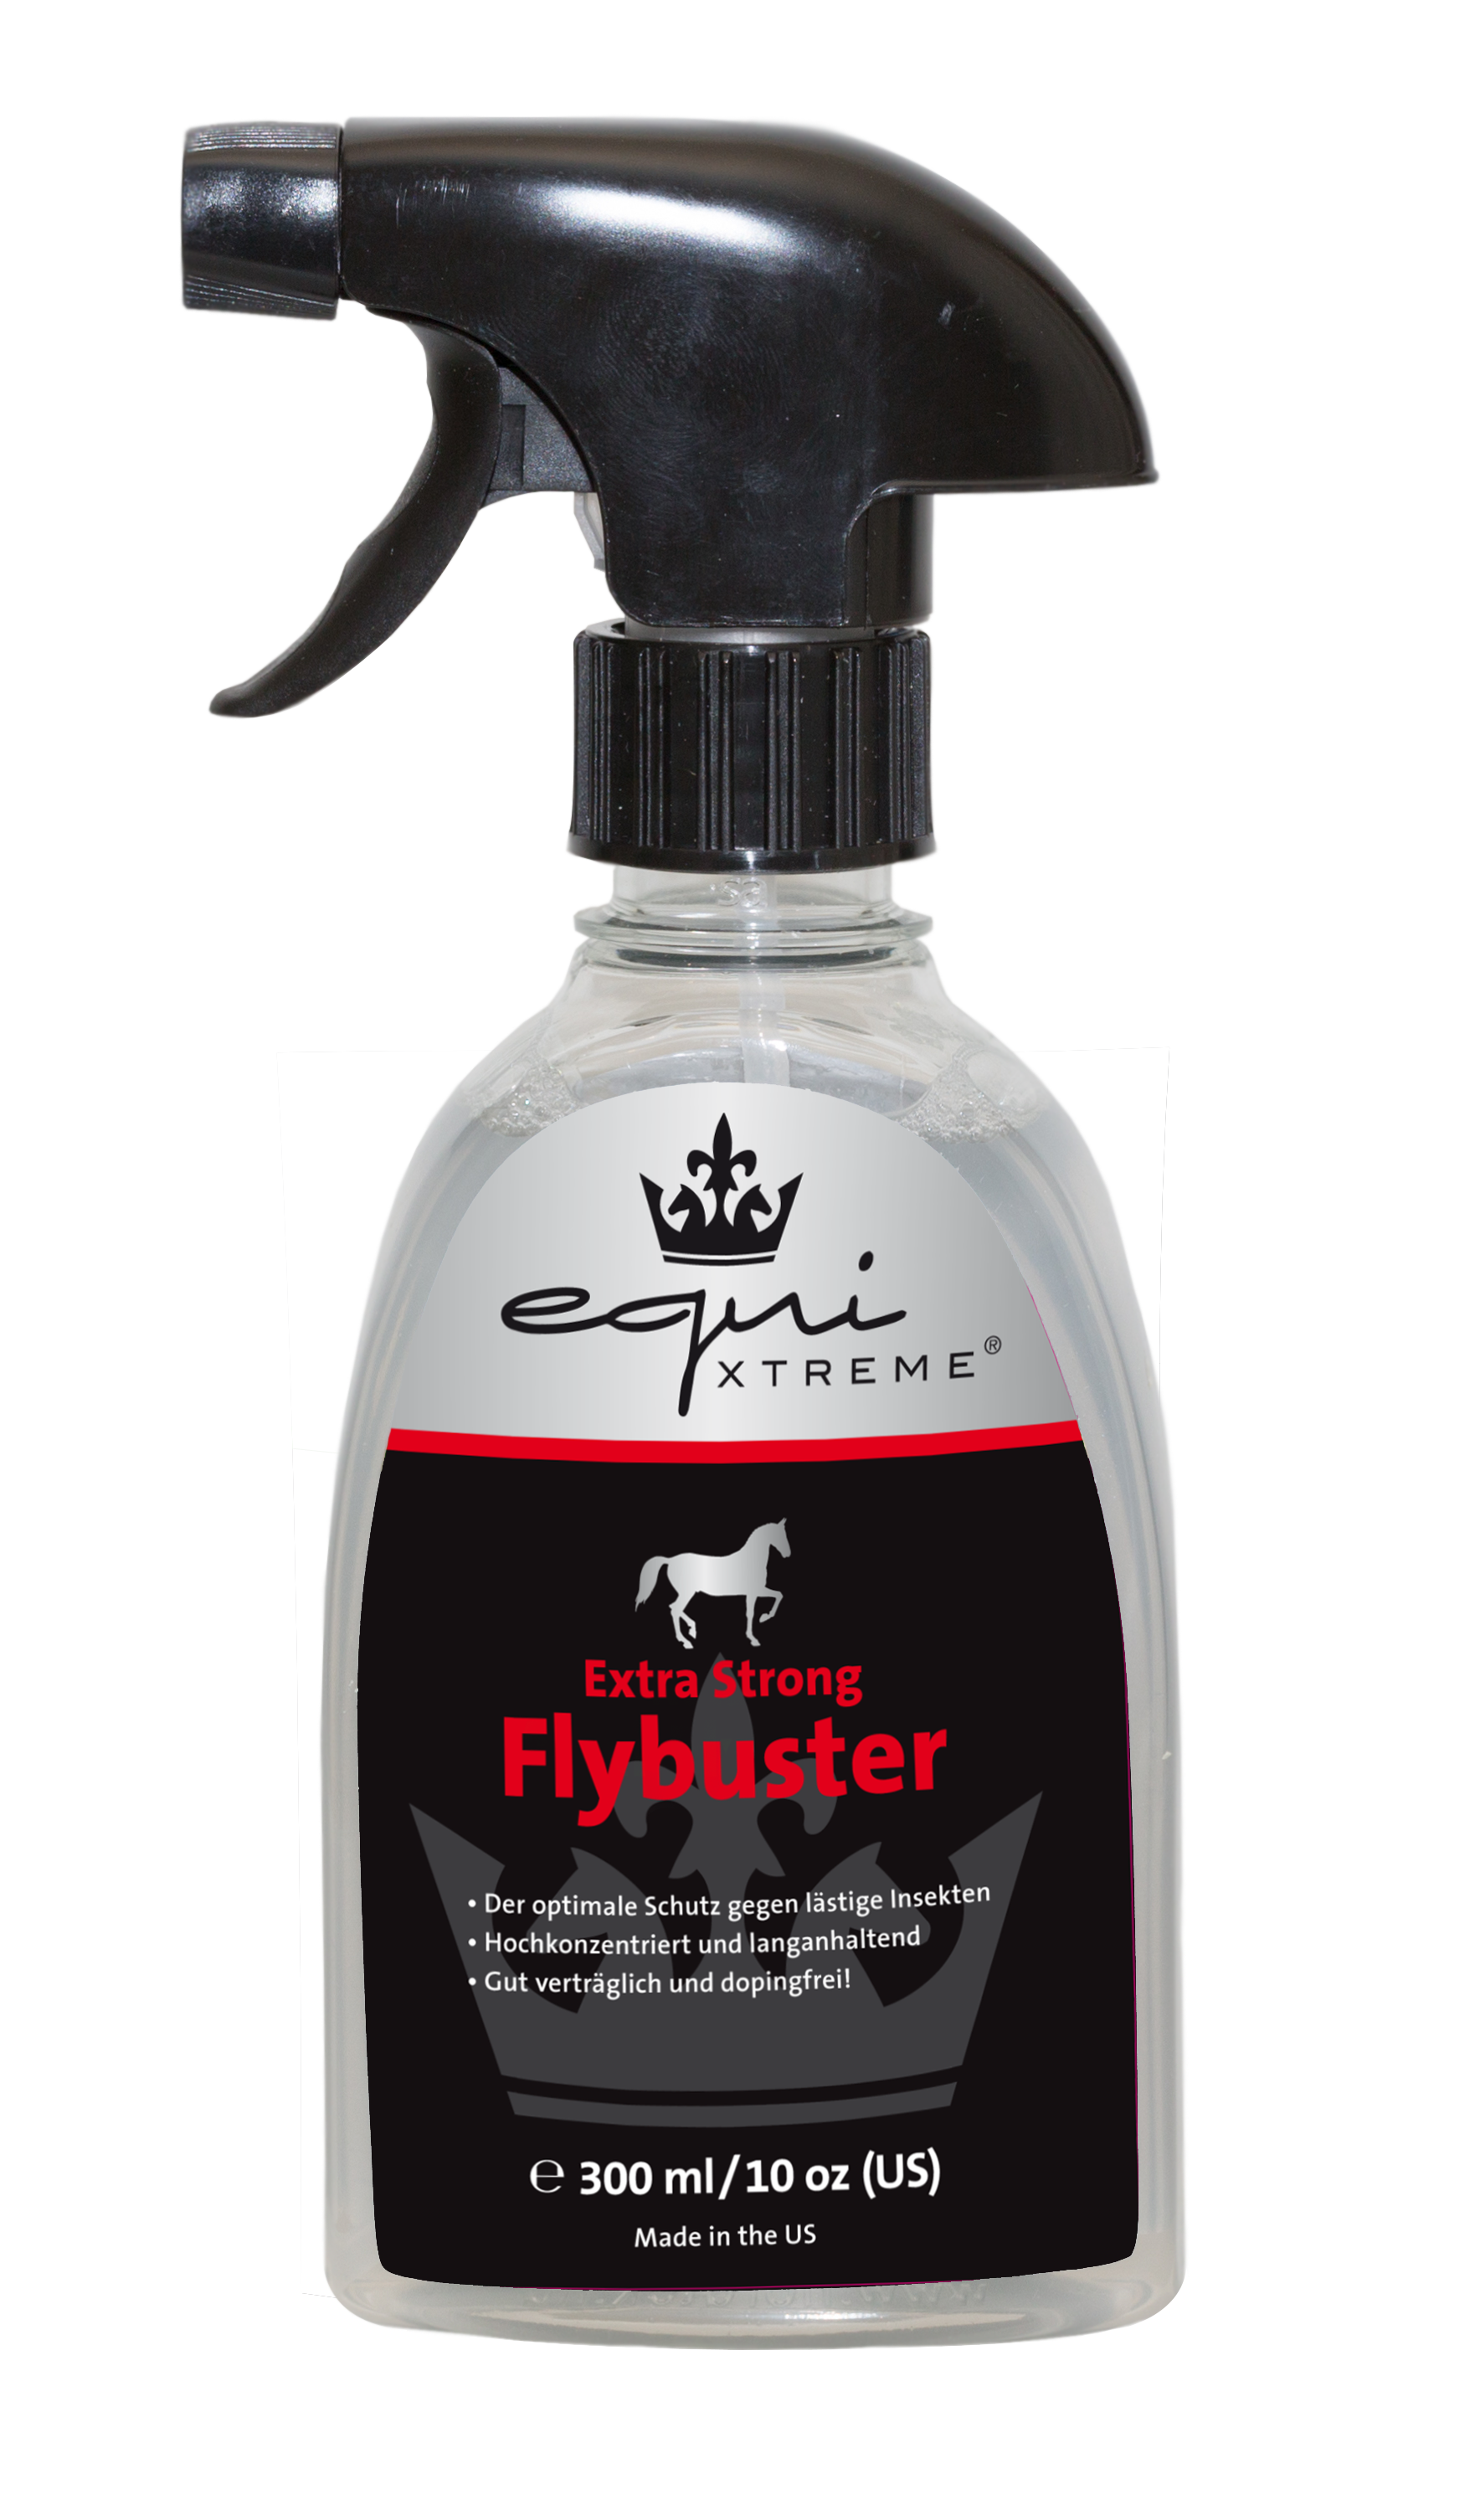 equiXTREME Flybuster